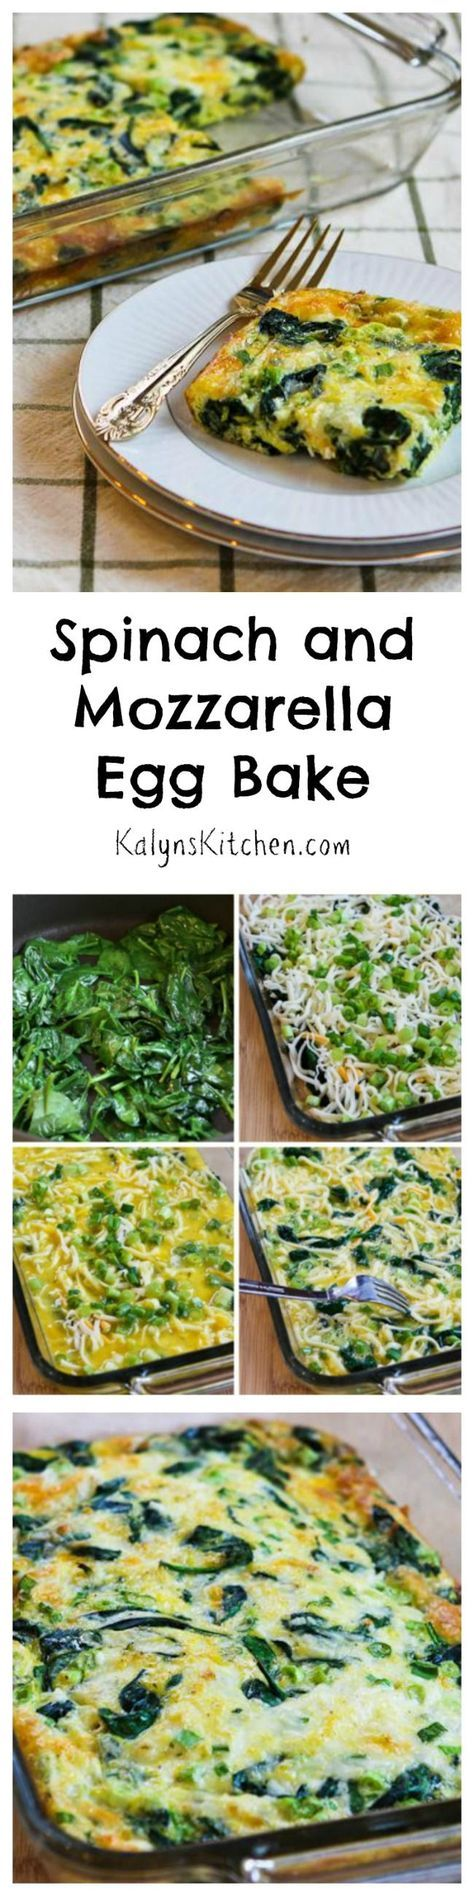 This Spinach and Mozzarella Egg Bake is a delicious way to start out your day with a healthy dose of greens! #LowCarb #GlutenFree #Vegetarian